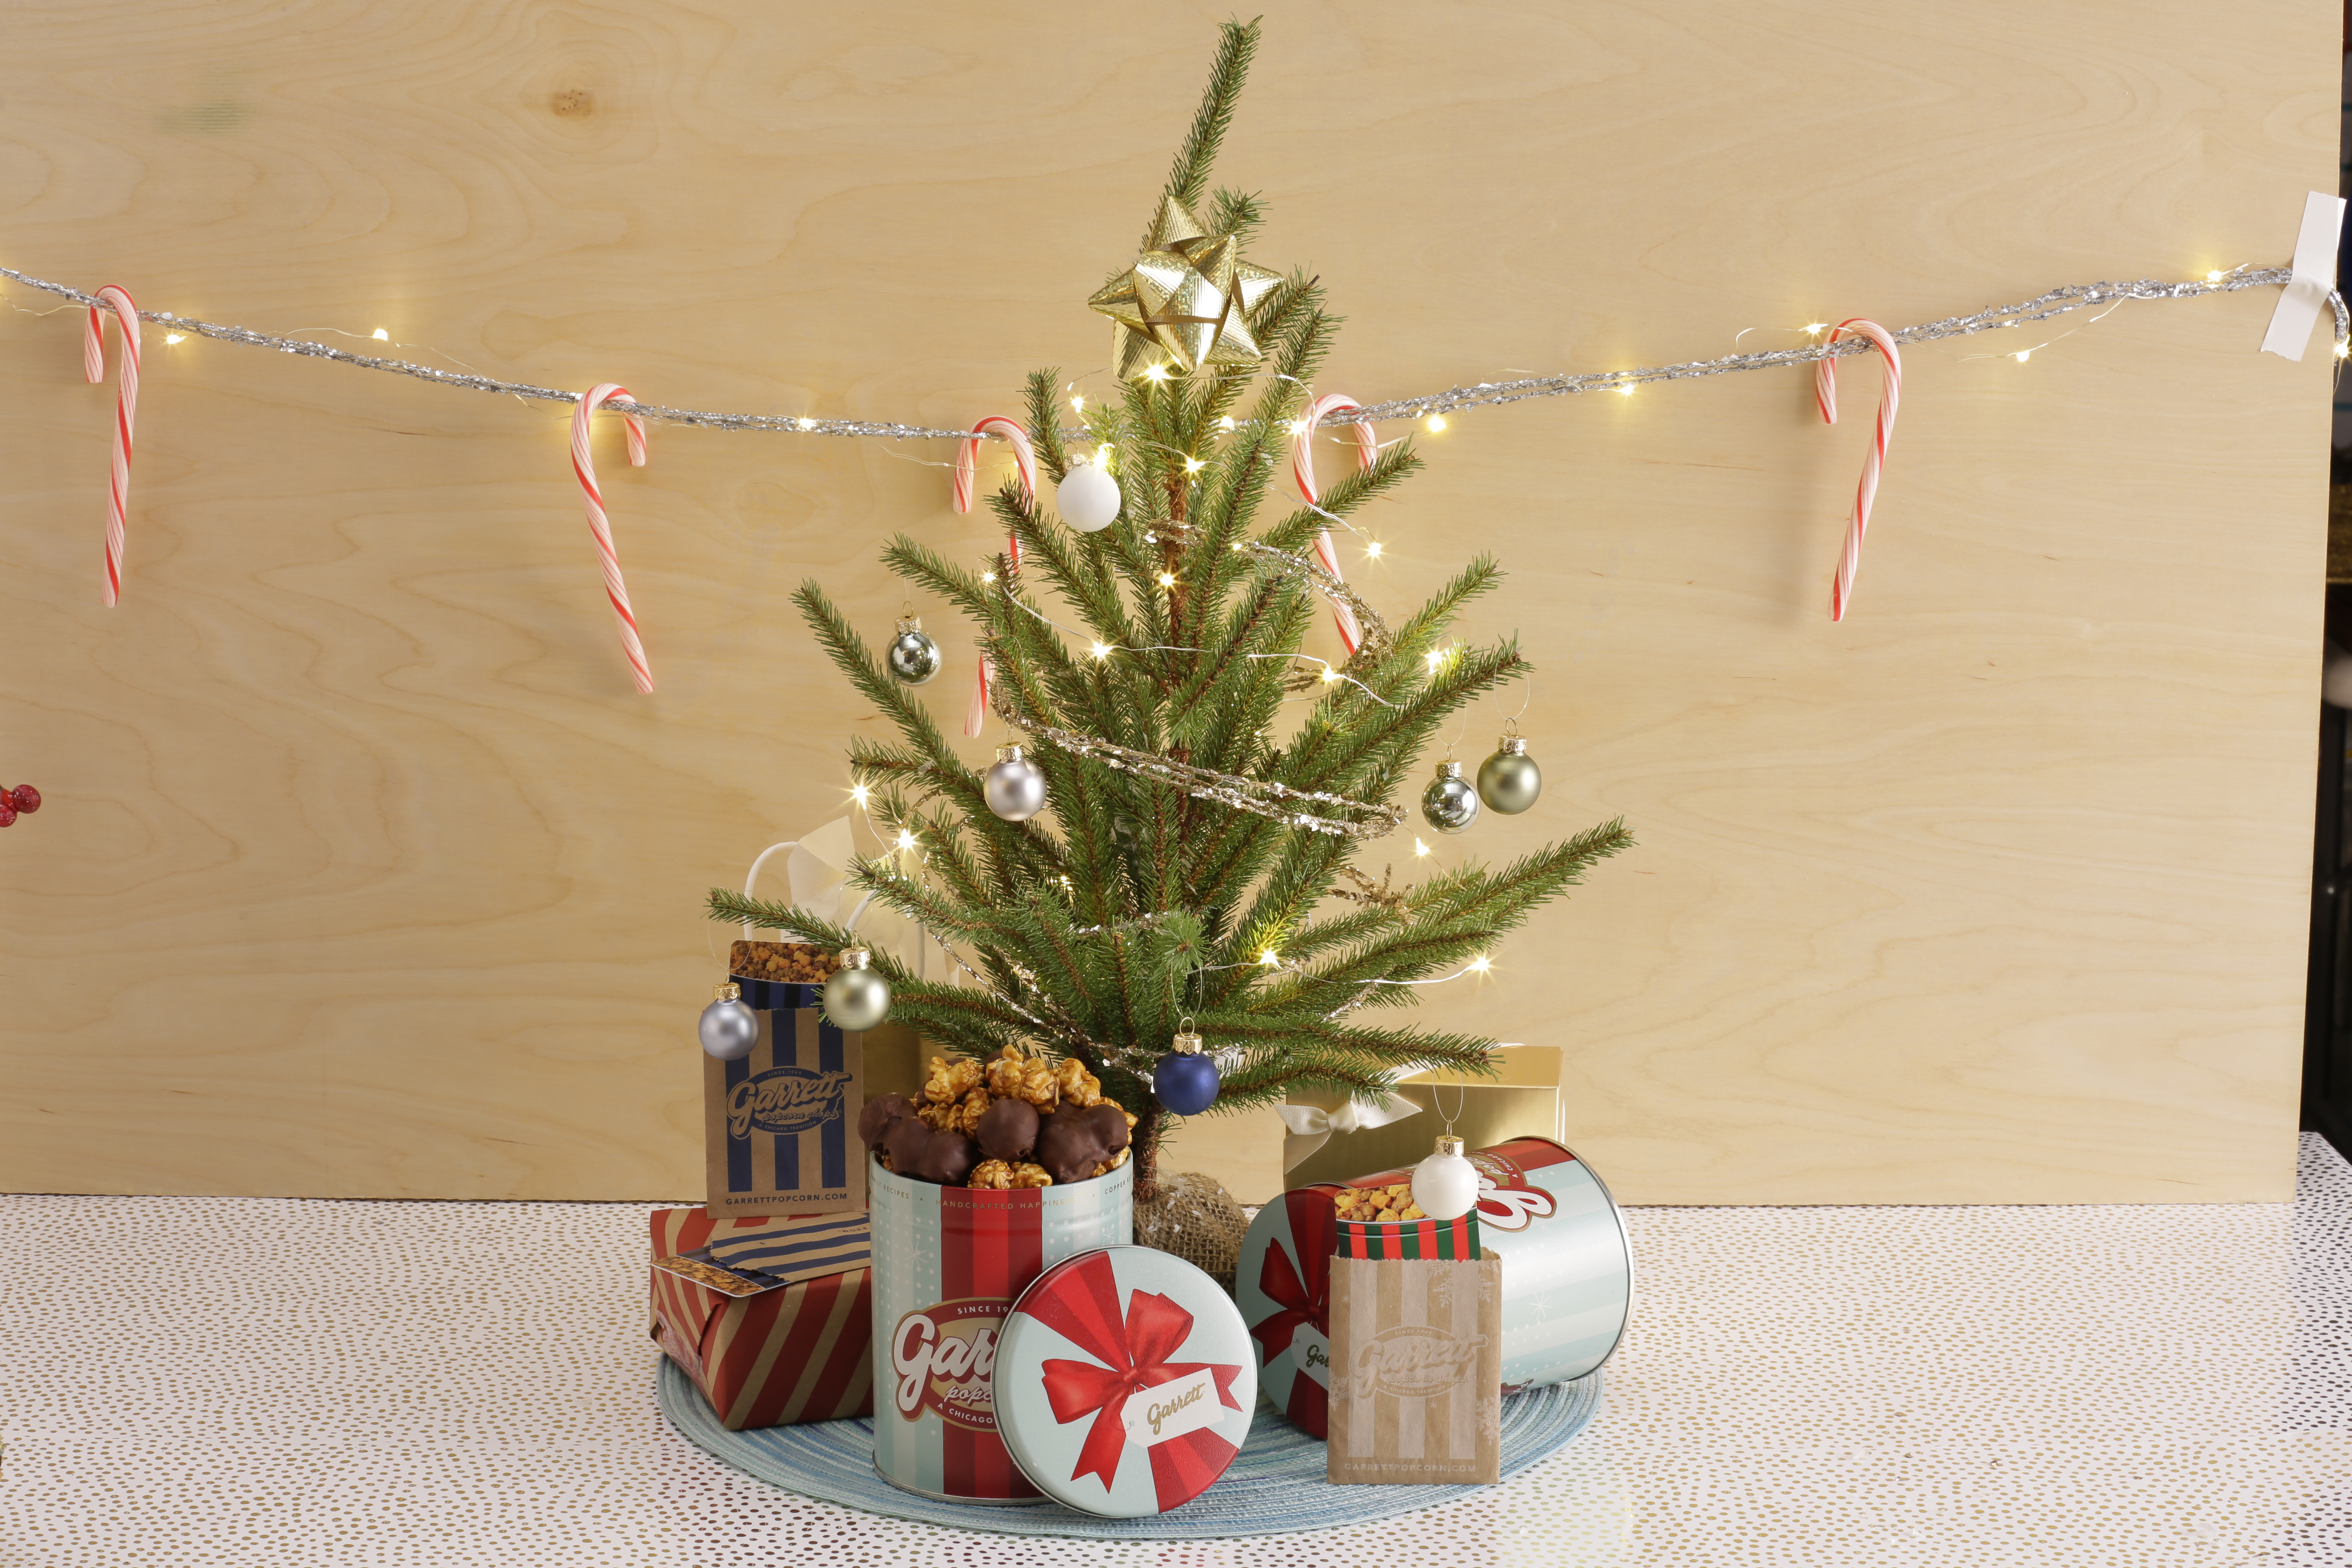 gift_wrap_under_tree_001